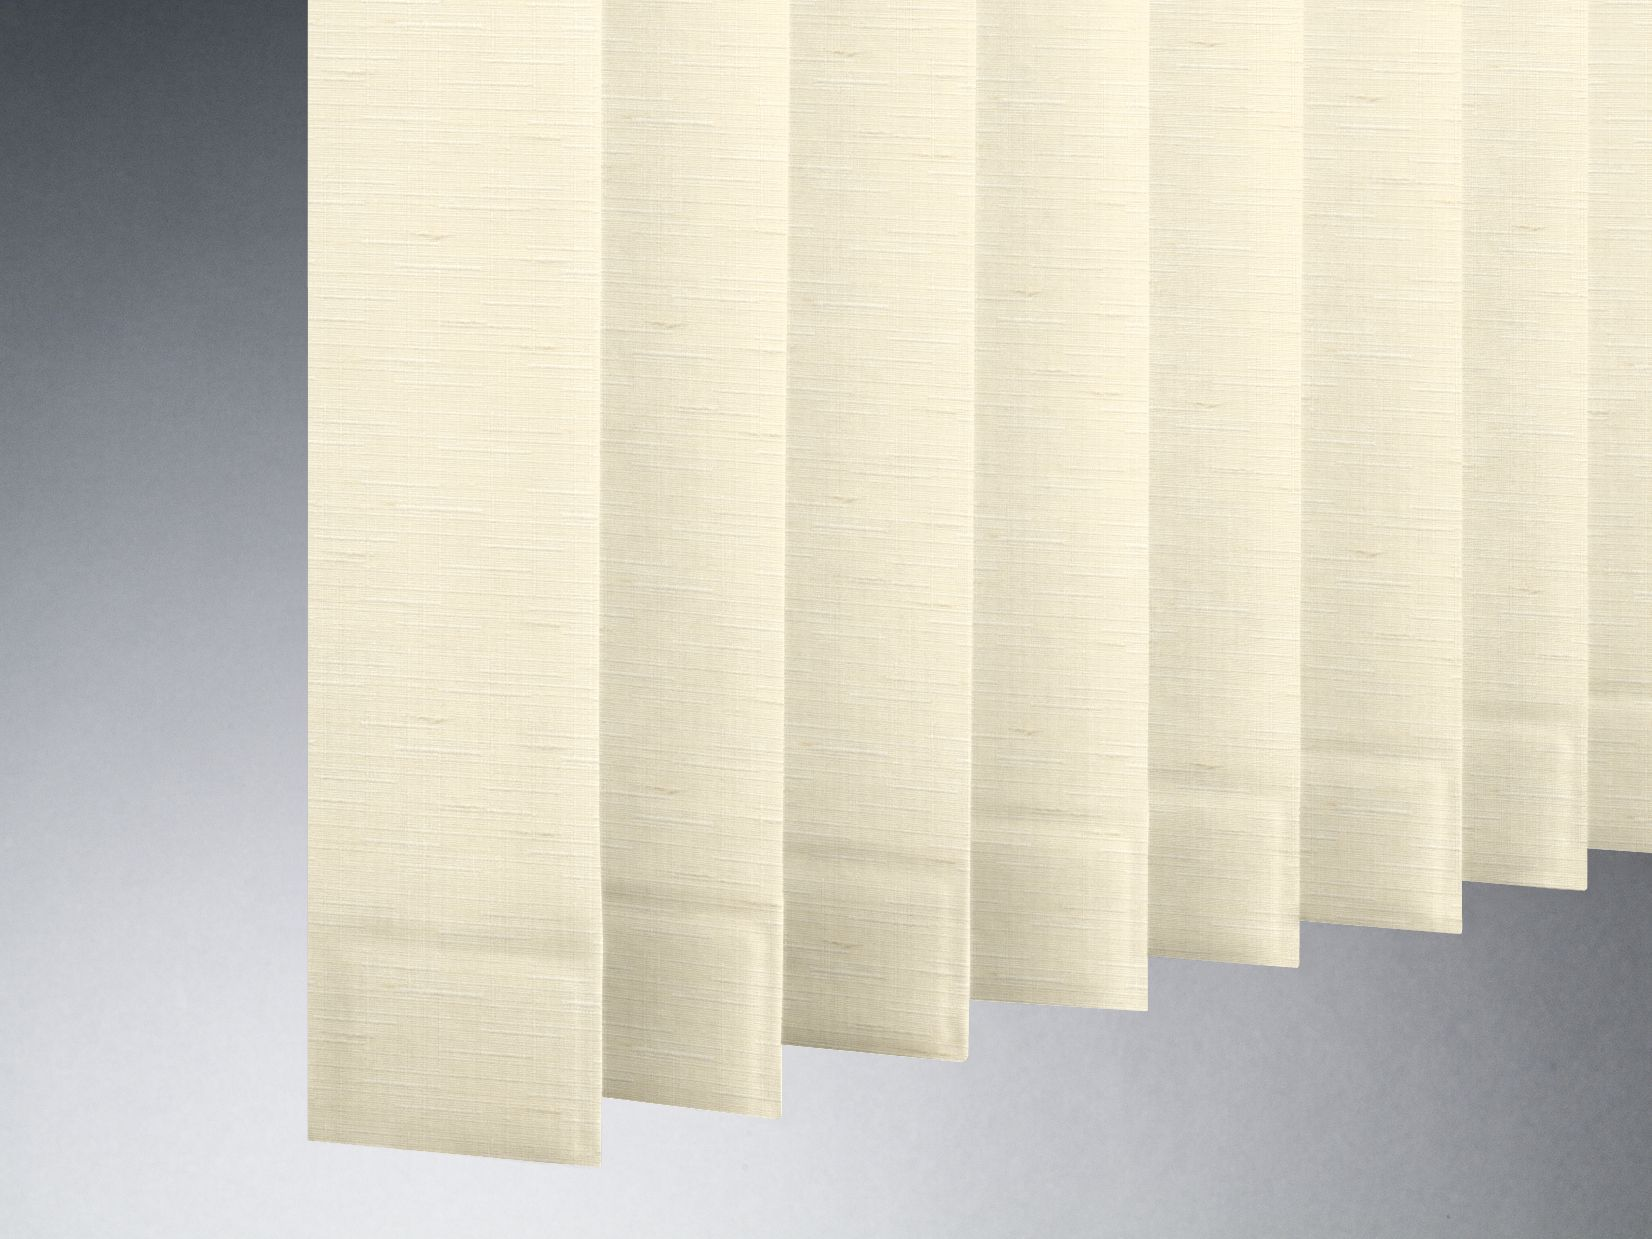 of pictures lowes glass horizontal slats home levolor in doors kitchen vertical for replacement size custom window treatments installation full door sliding fabric depot blinds instructions